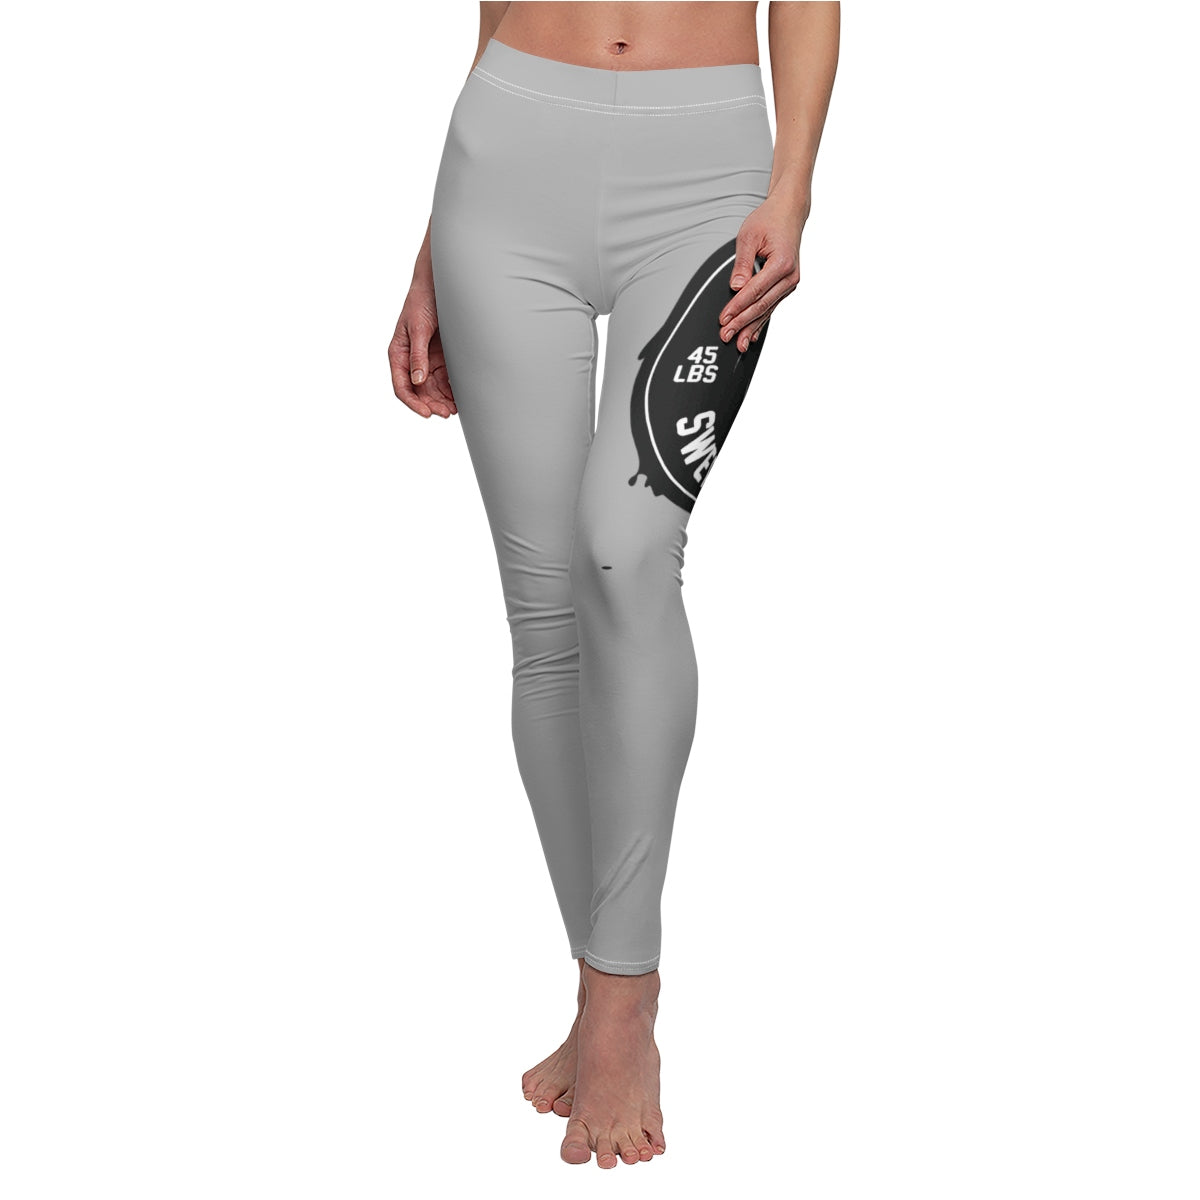 Did You Sweat Today - Women's Cut & Sew Casual Leggings